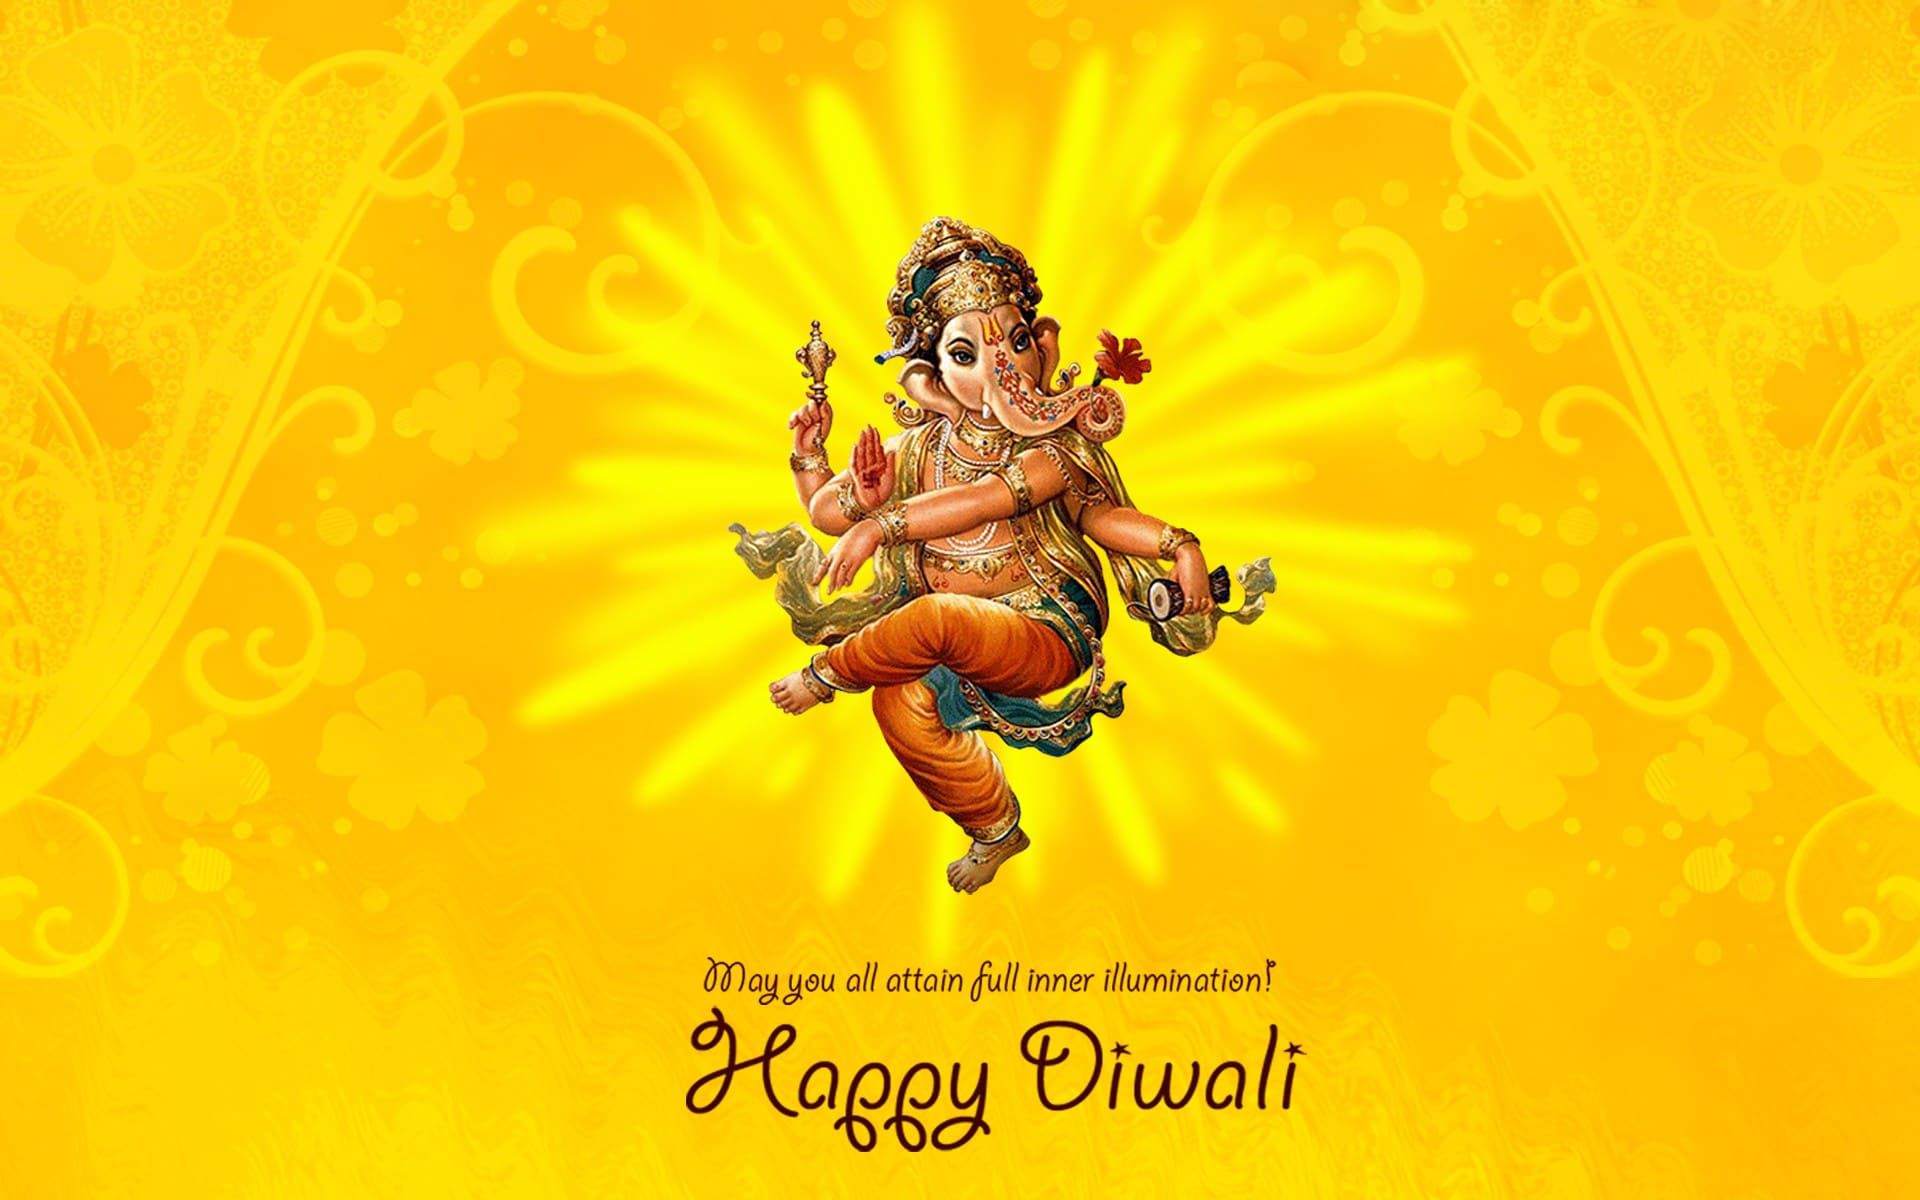 happy diwali wallpapers - free hd images